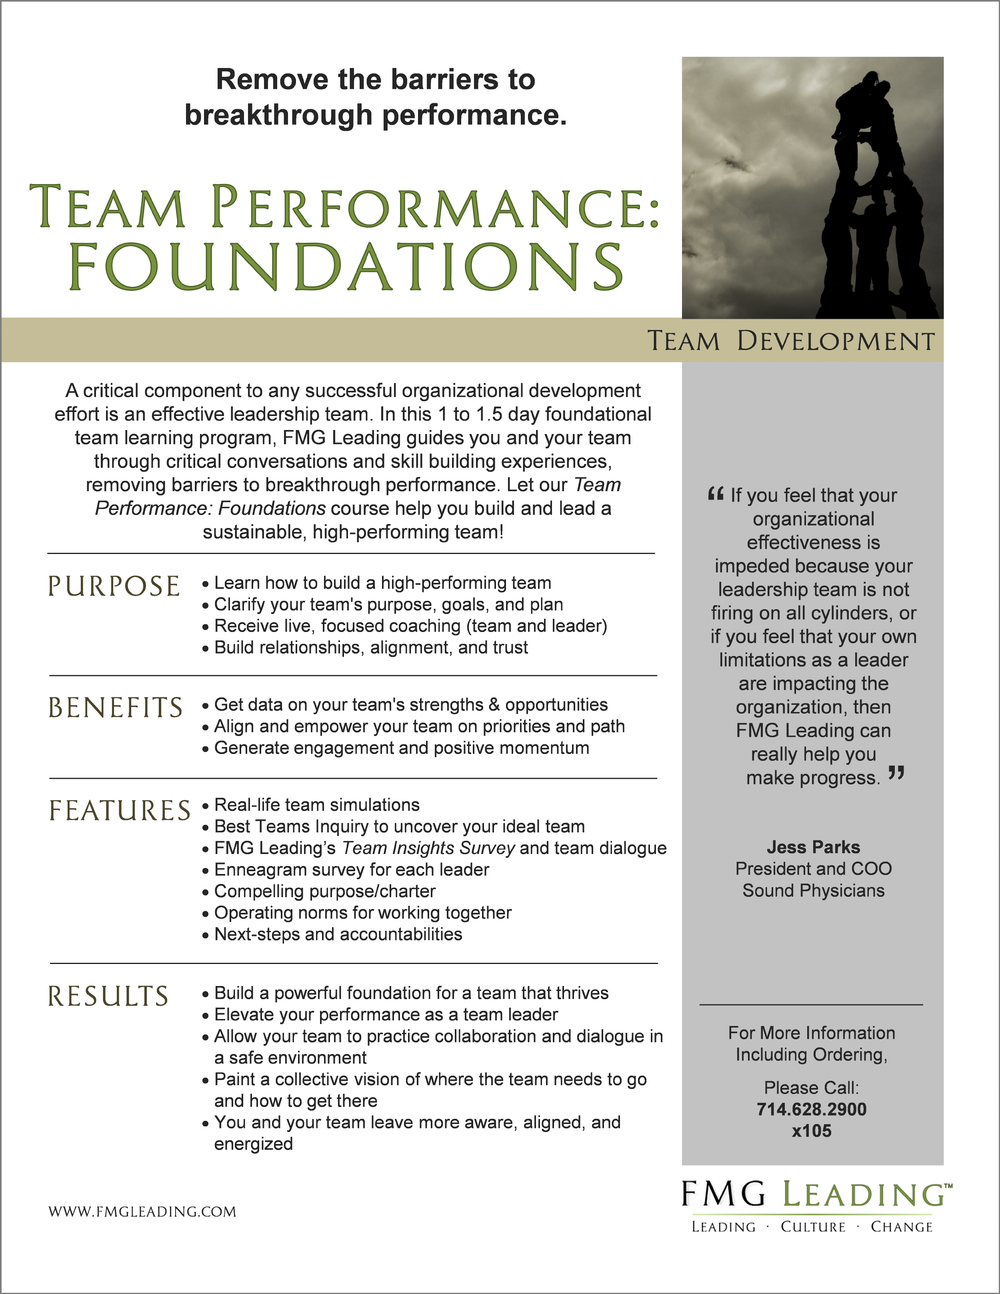 team development fmg leading leading middot culture middot change click image to more